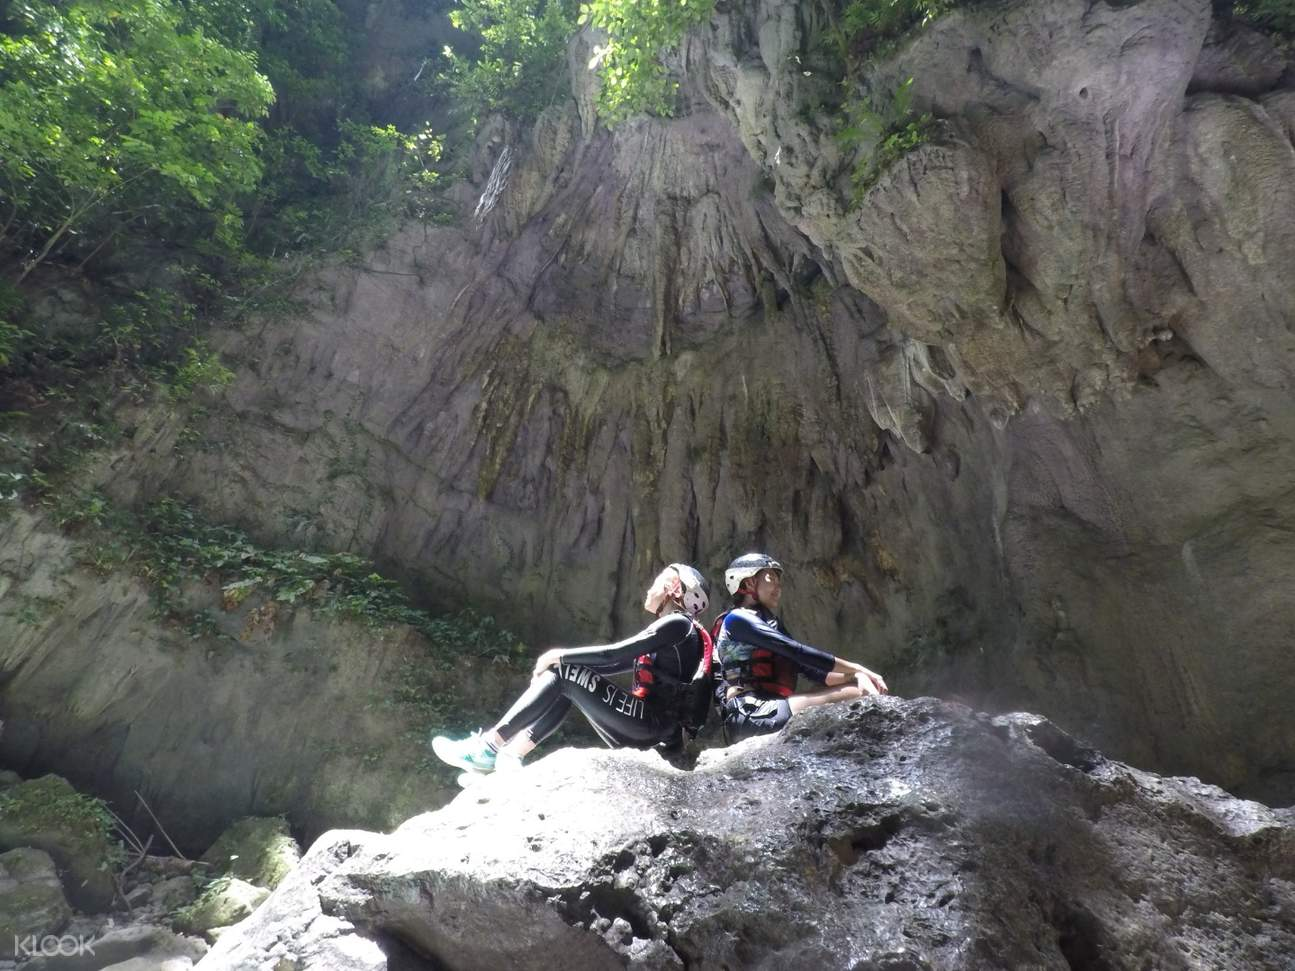 Badian Canyoneering Adventure with friends